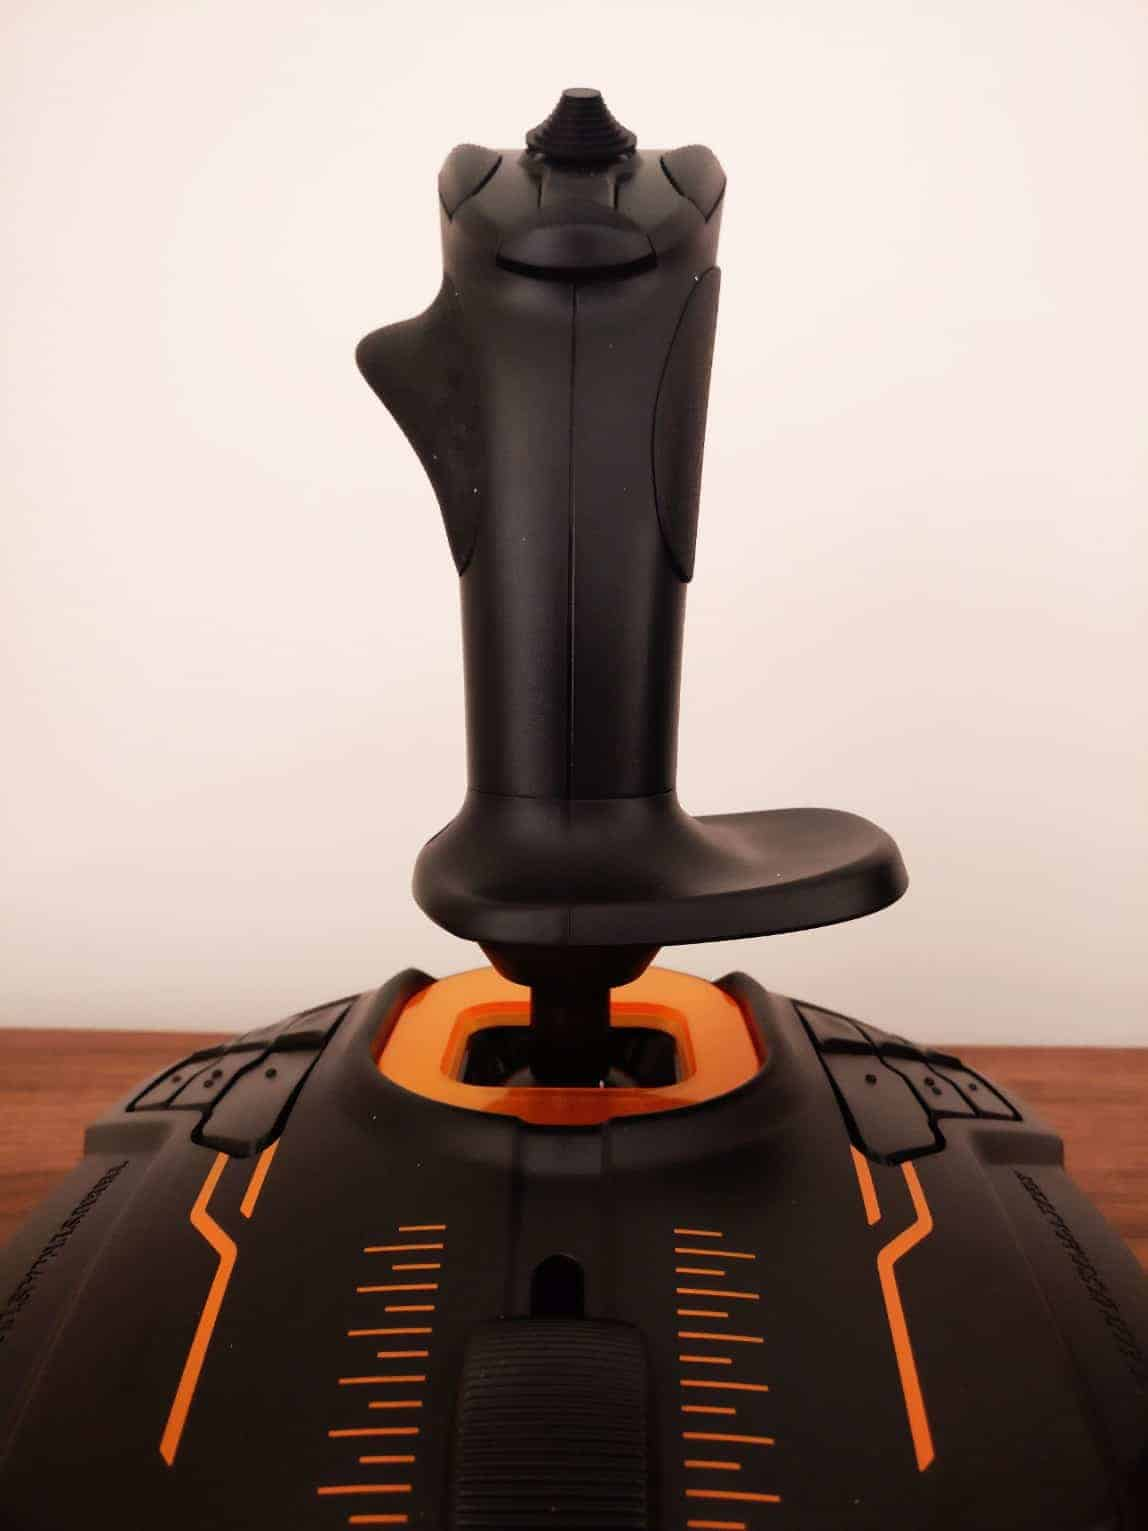 Thrustmaster-Flightstick-Photos20 Thrustmaster T.16000M FCS Hotas Joystick Review